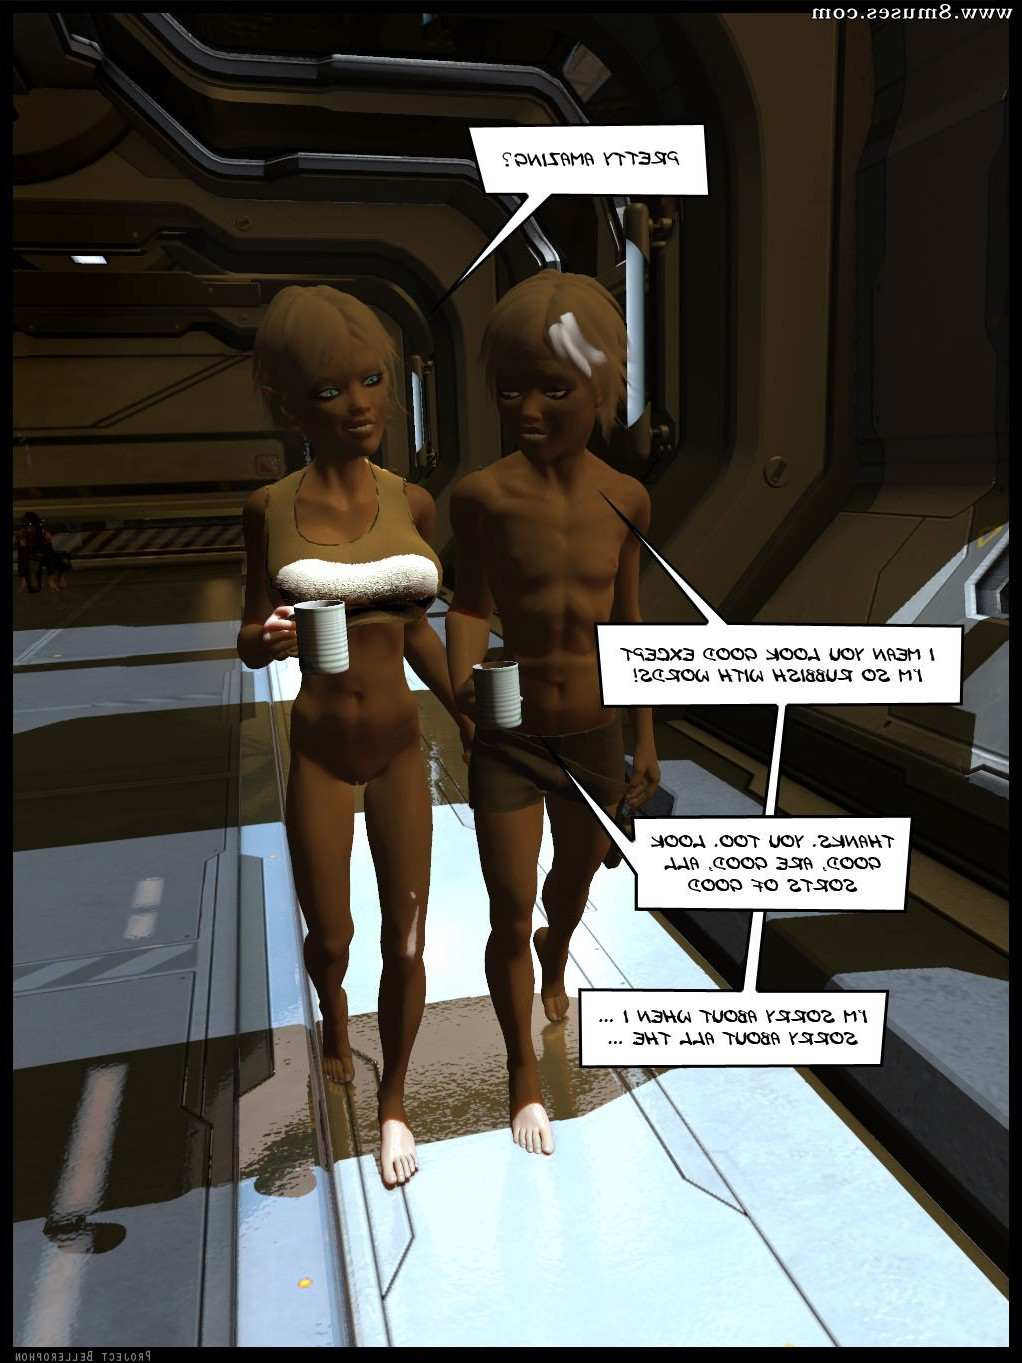 project-bellerophon-comics/18-Shadows-and-Dust 18-Shadows_and_Dust__8muses_-_Sex_and_Porn_Comics_17.jpg